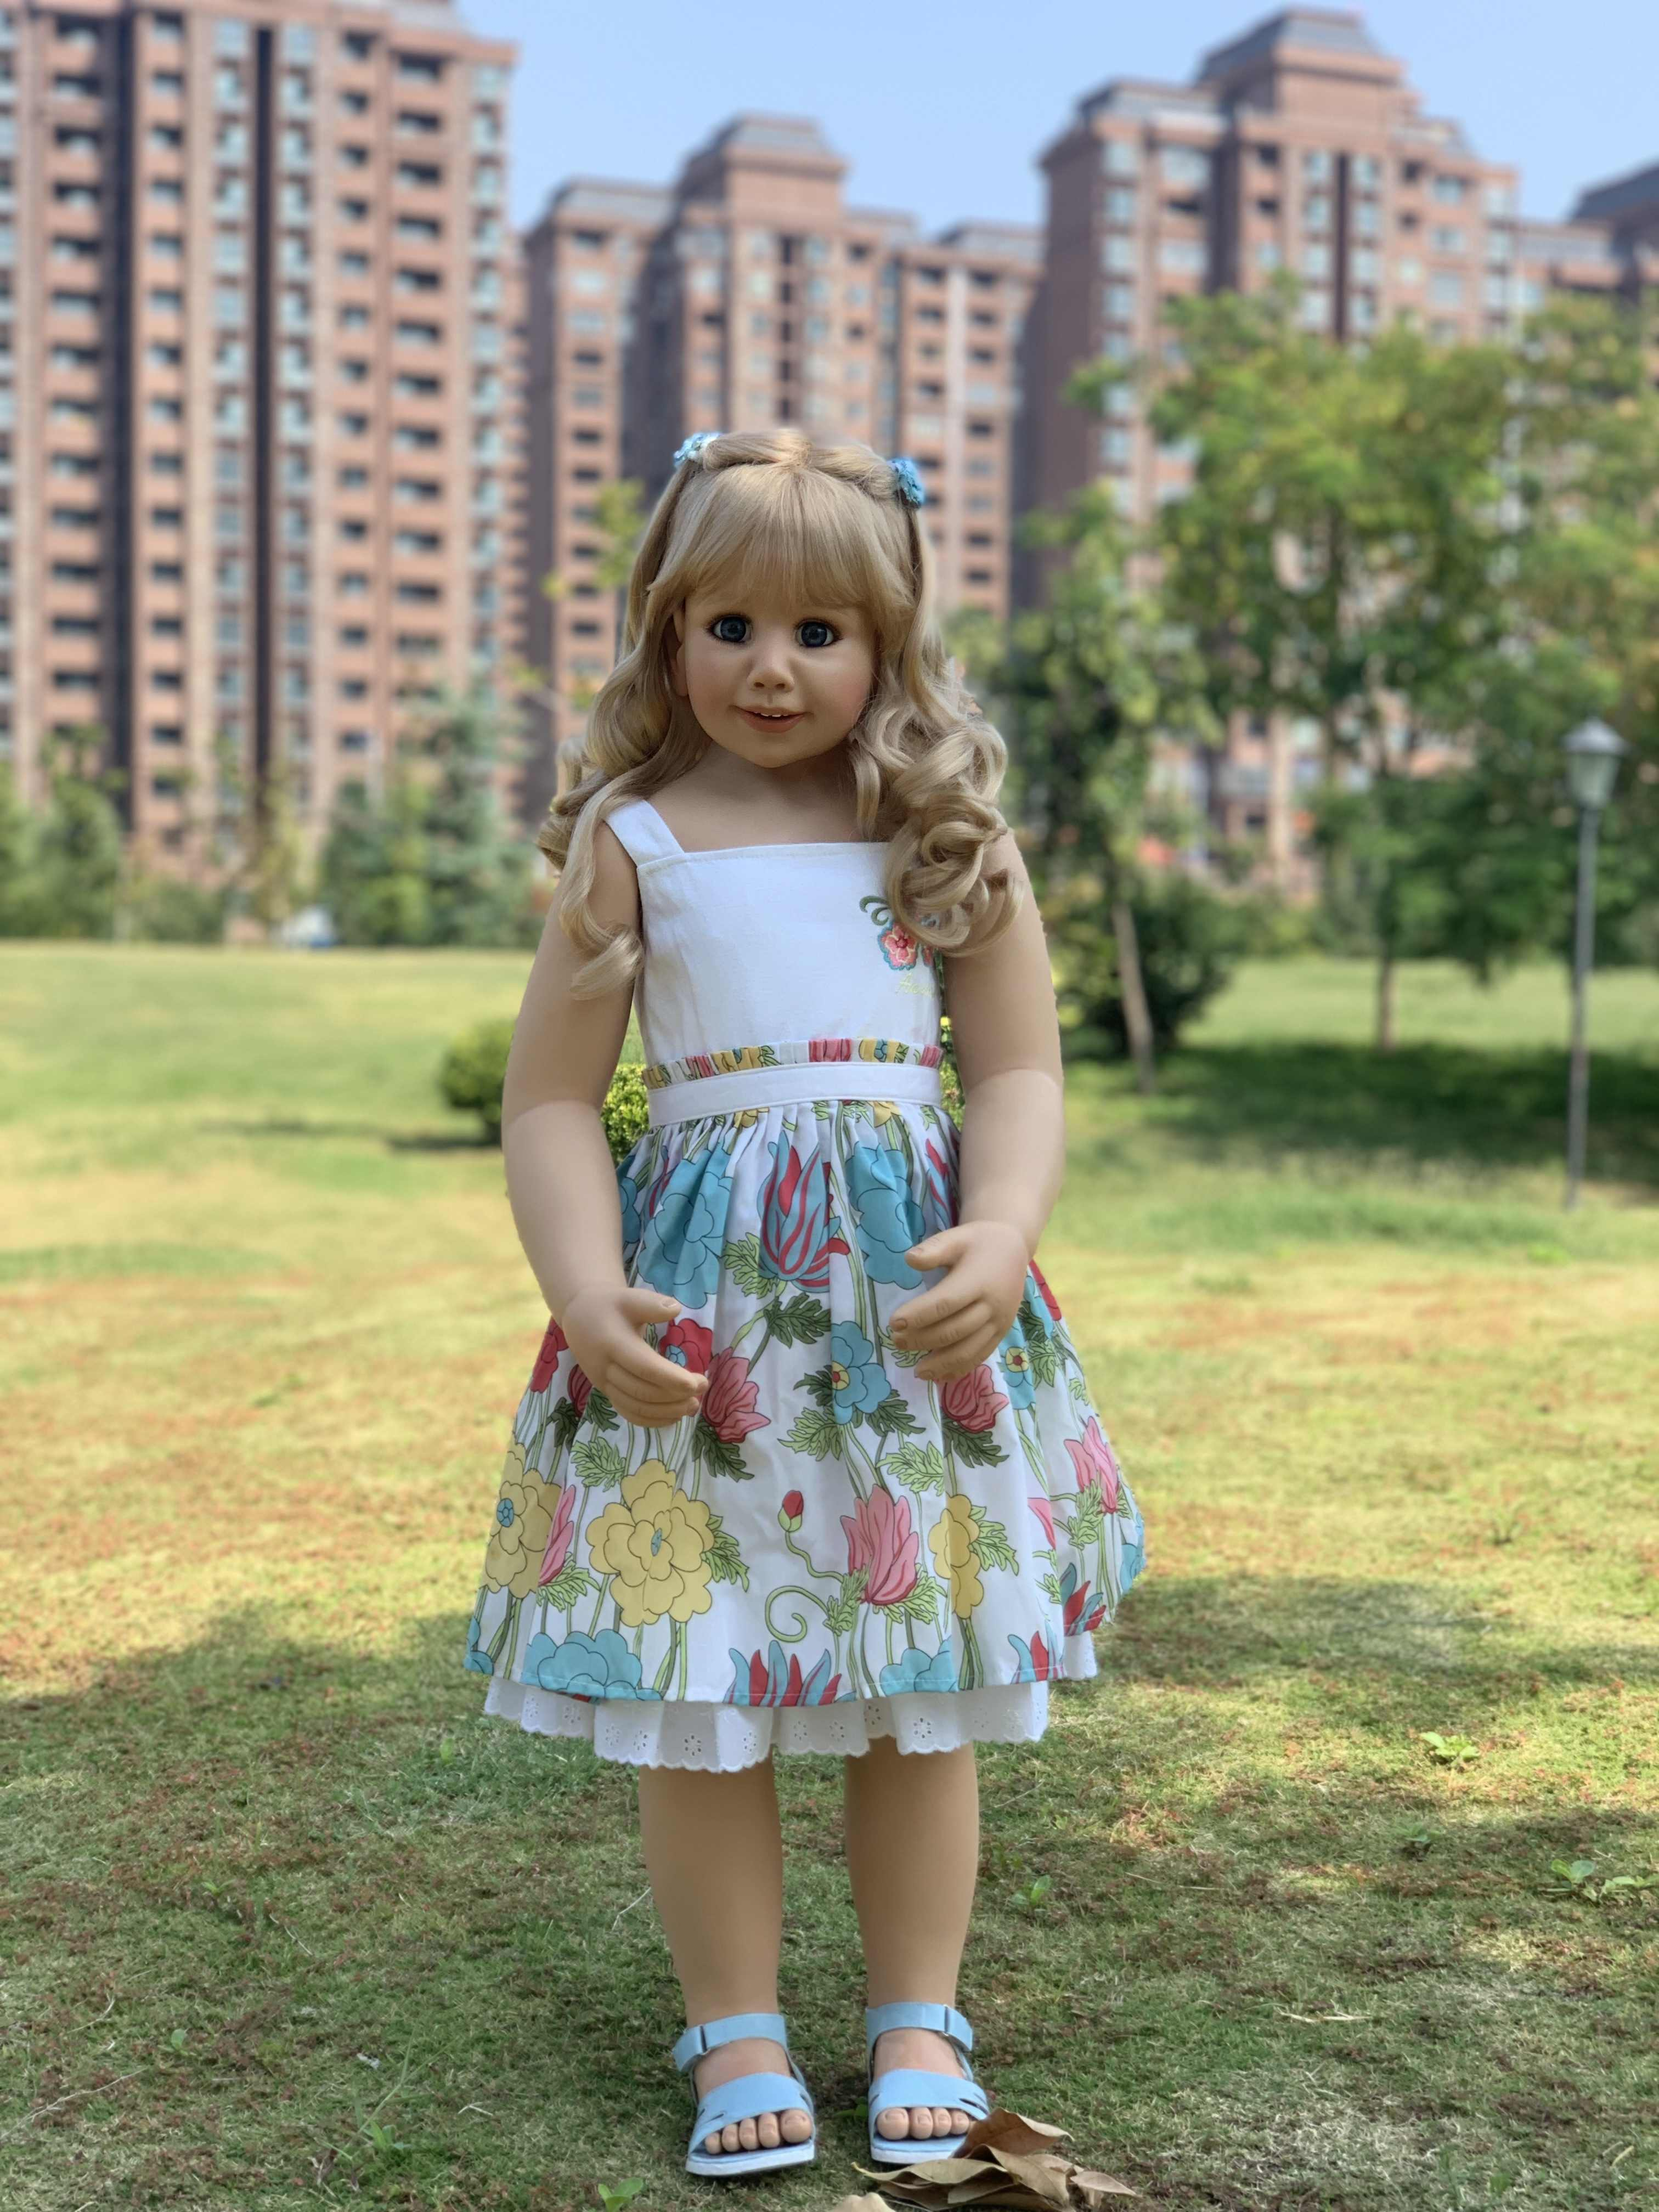 55cm Full Silicone Body Reborn Baby Doll Toy For Girl ...